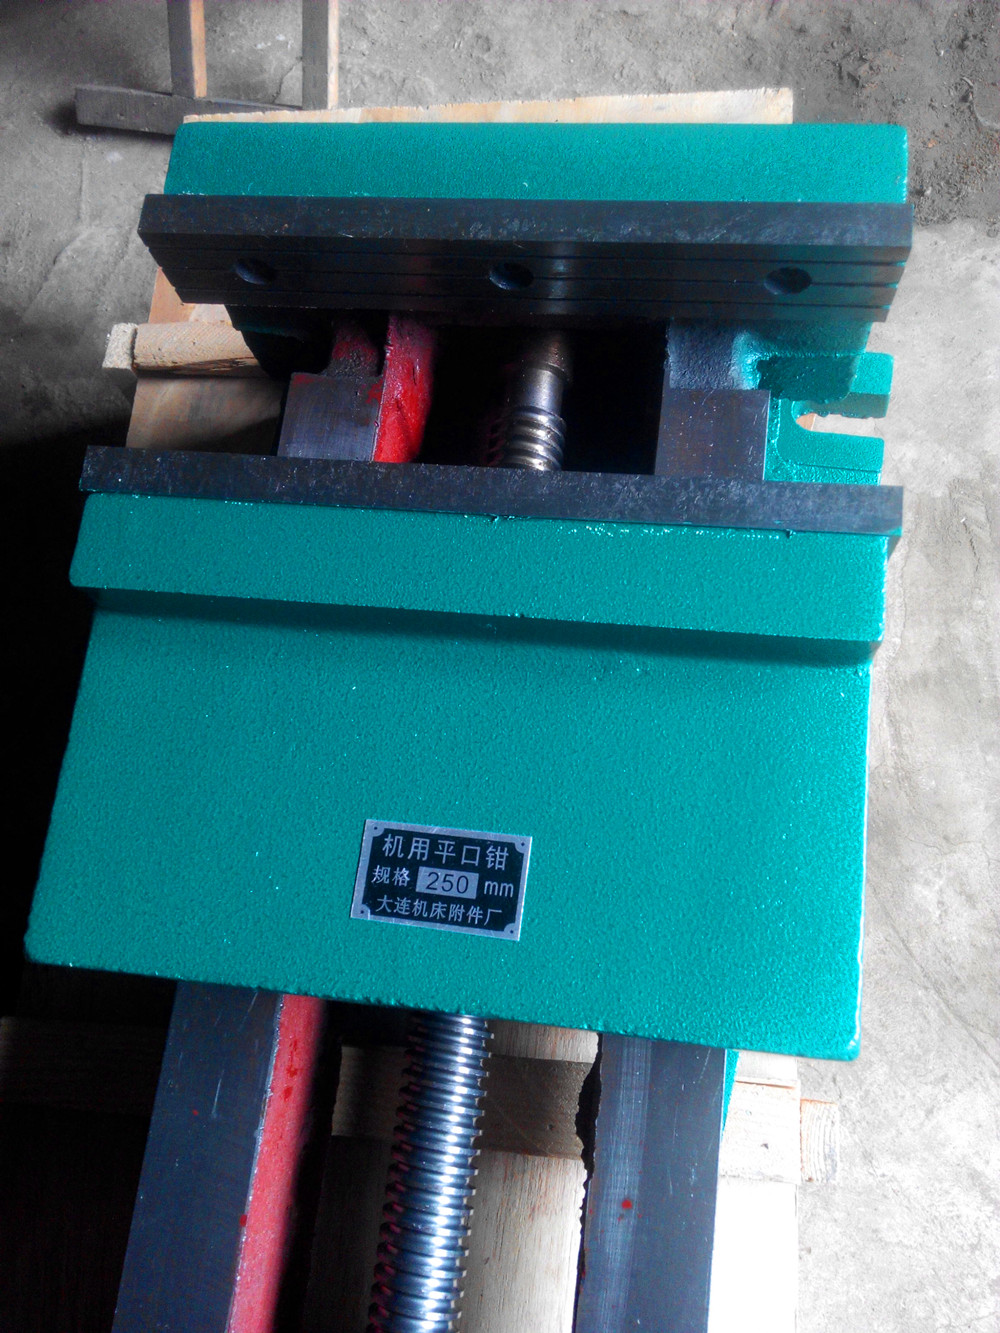 Clamp 25010 inch 32012 inch clamp bench vice for milling machine